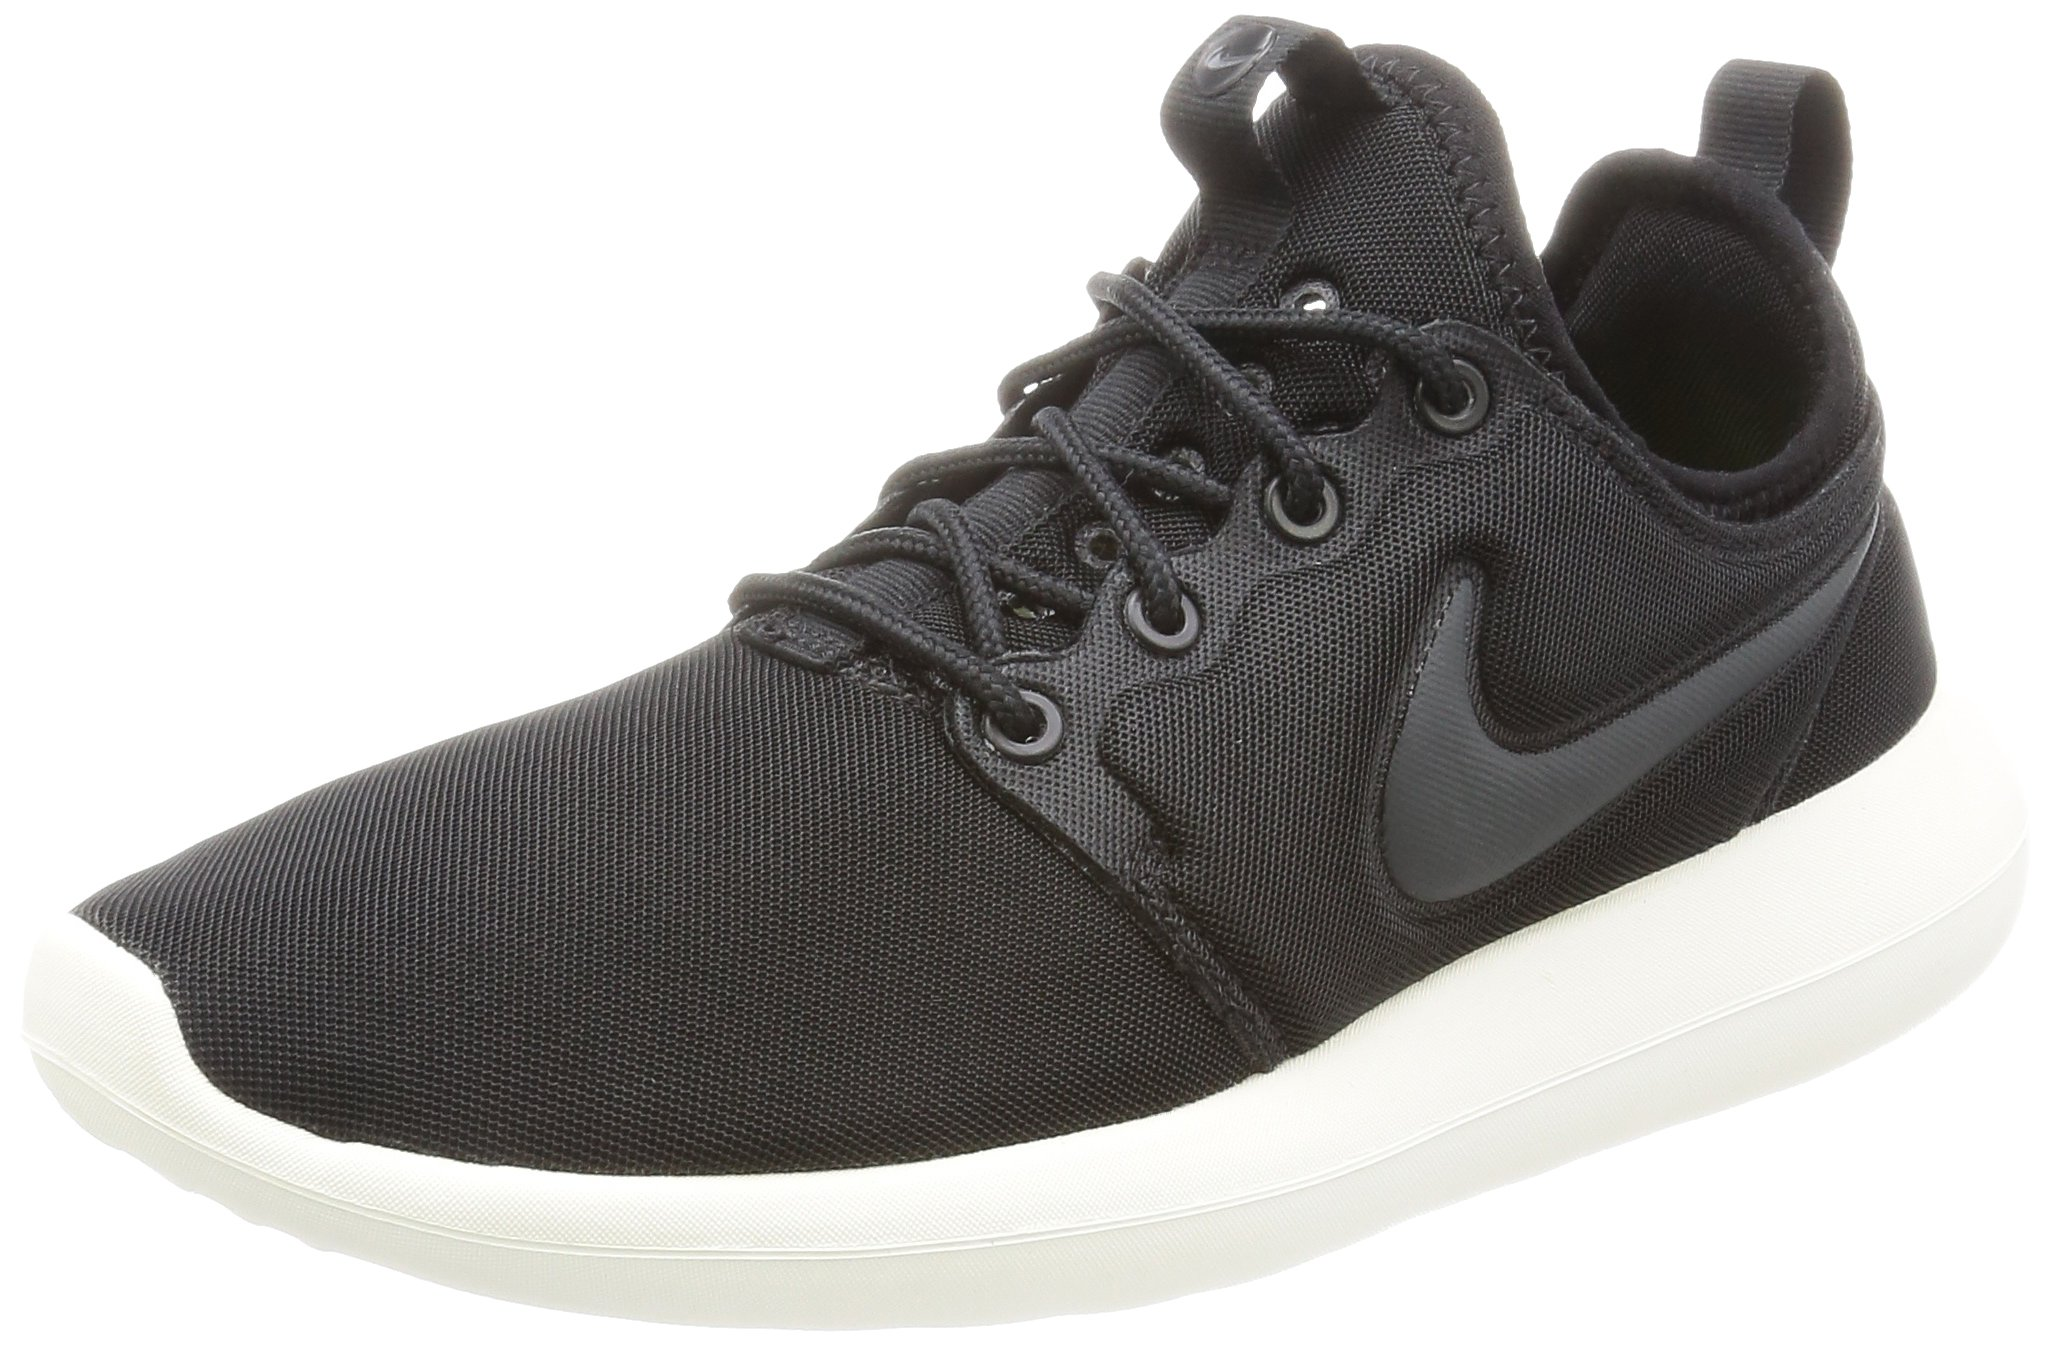 NIKE W Roshe Two Womens Running-Shoes 844931-002_10.5 - Black/Anthracite-SAIL-Volt